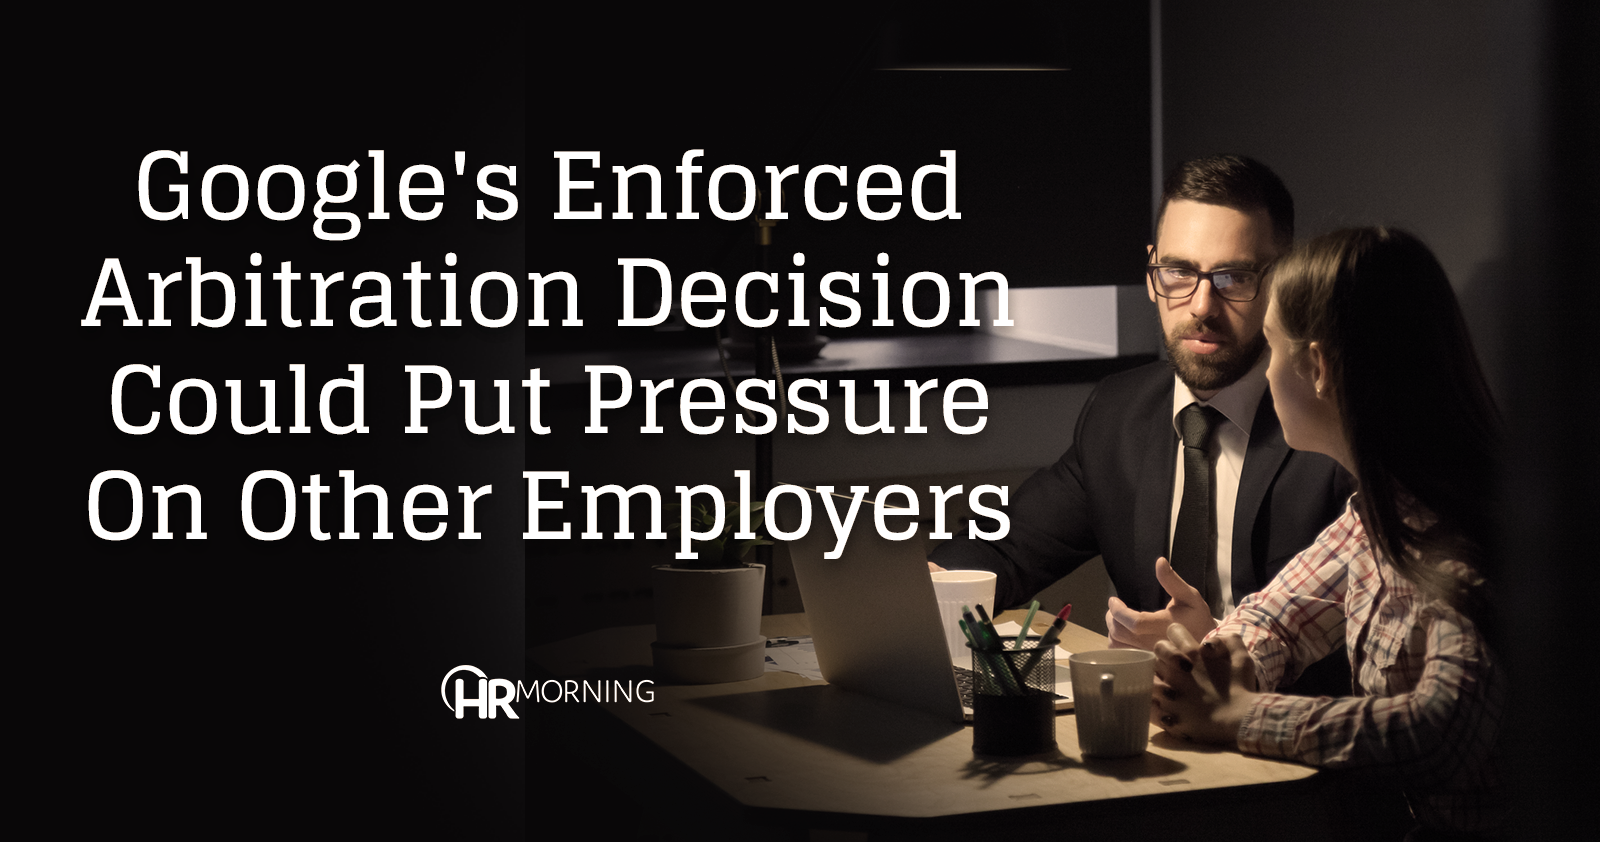 Google's enforced arbitration decision could put pressure on other employers